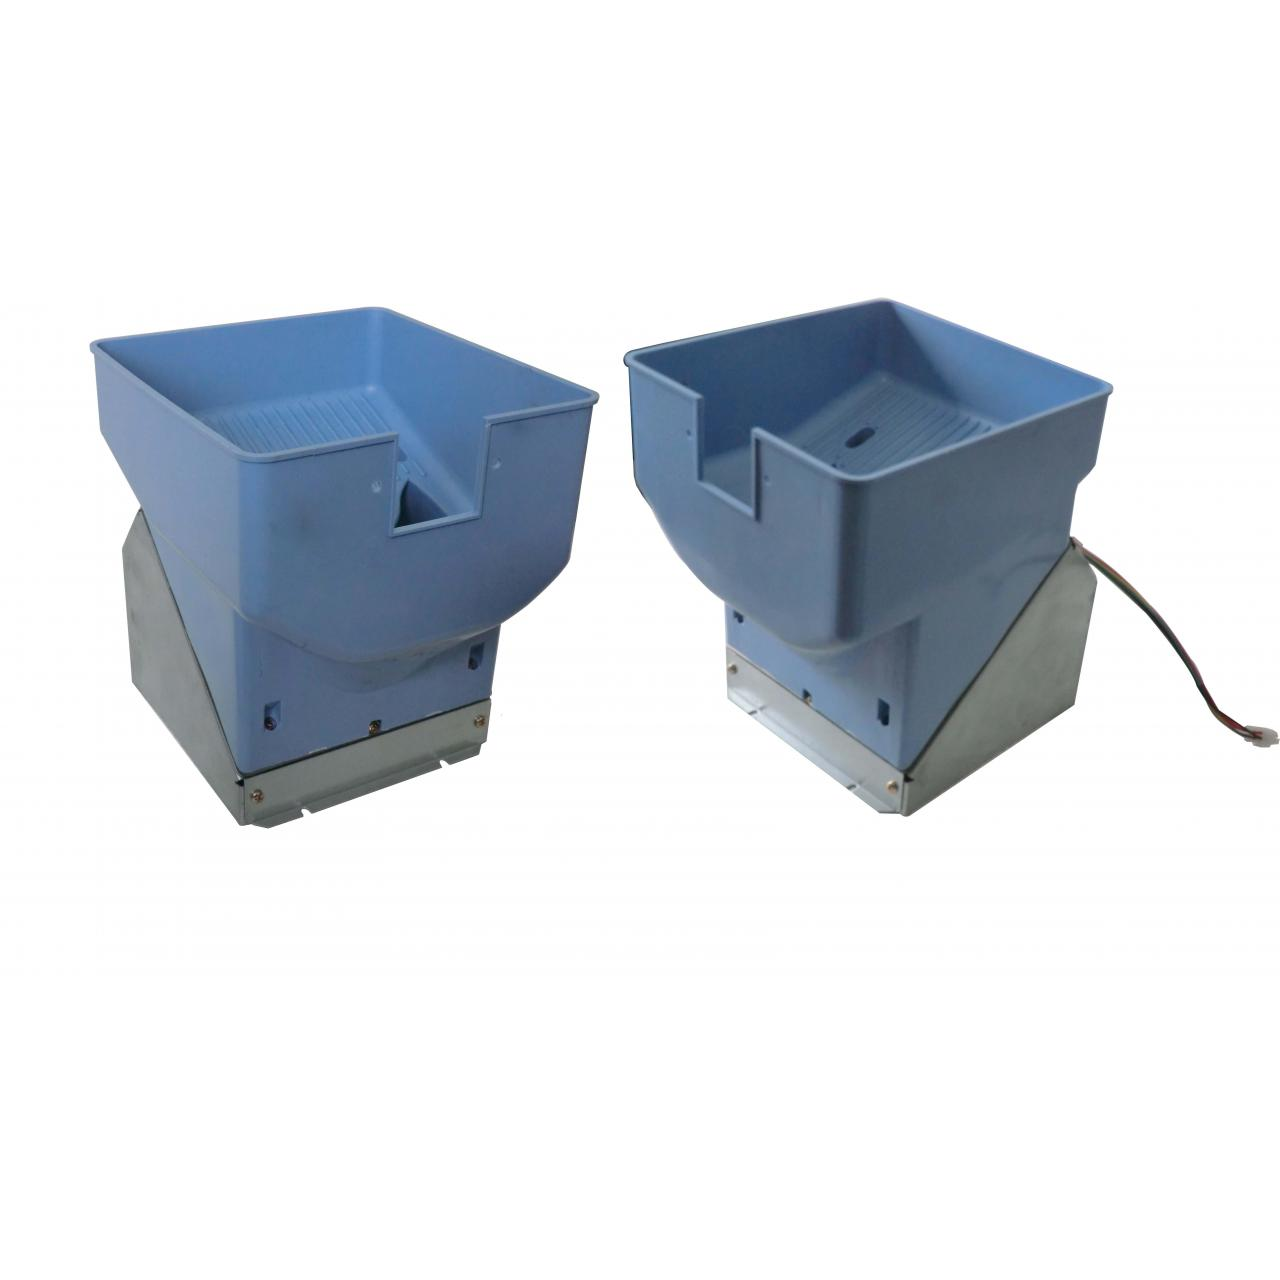 Buy cheap GD-JINGAN 8 Hole coin hopper counter for arcade jamma slot game or vending machine sorters from wholesalers